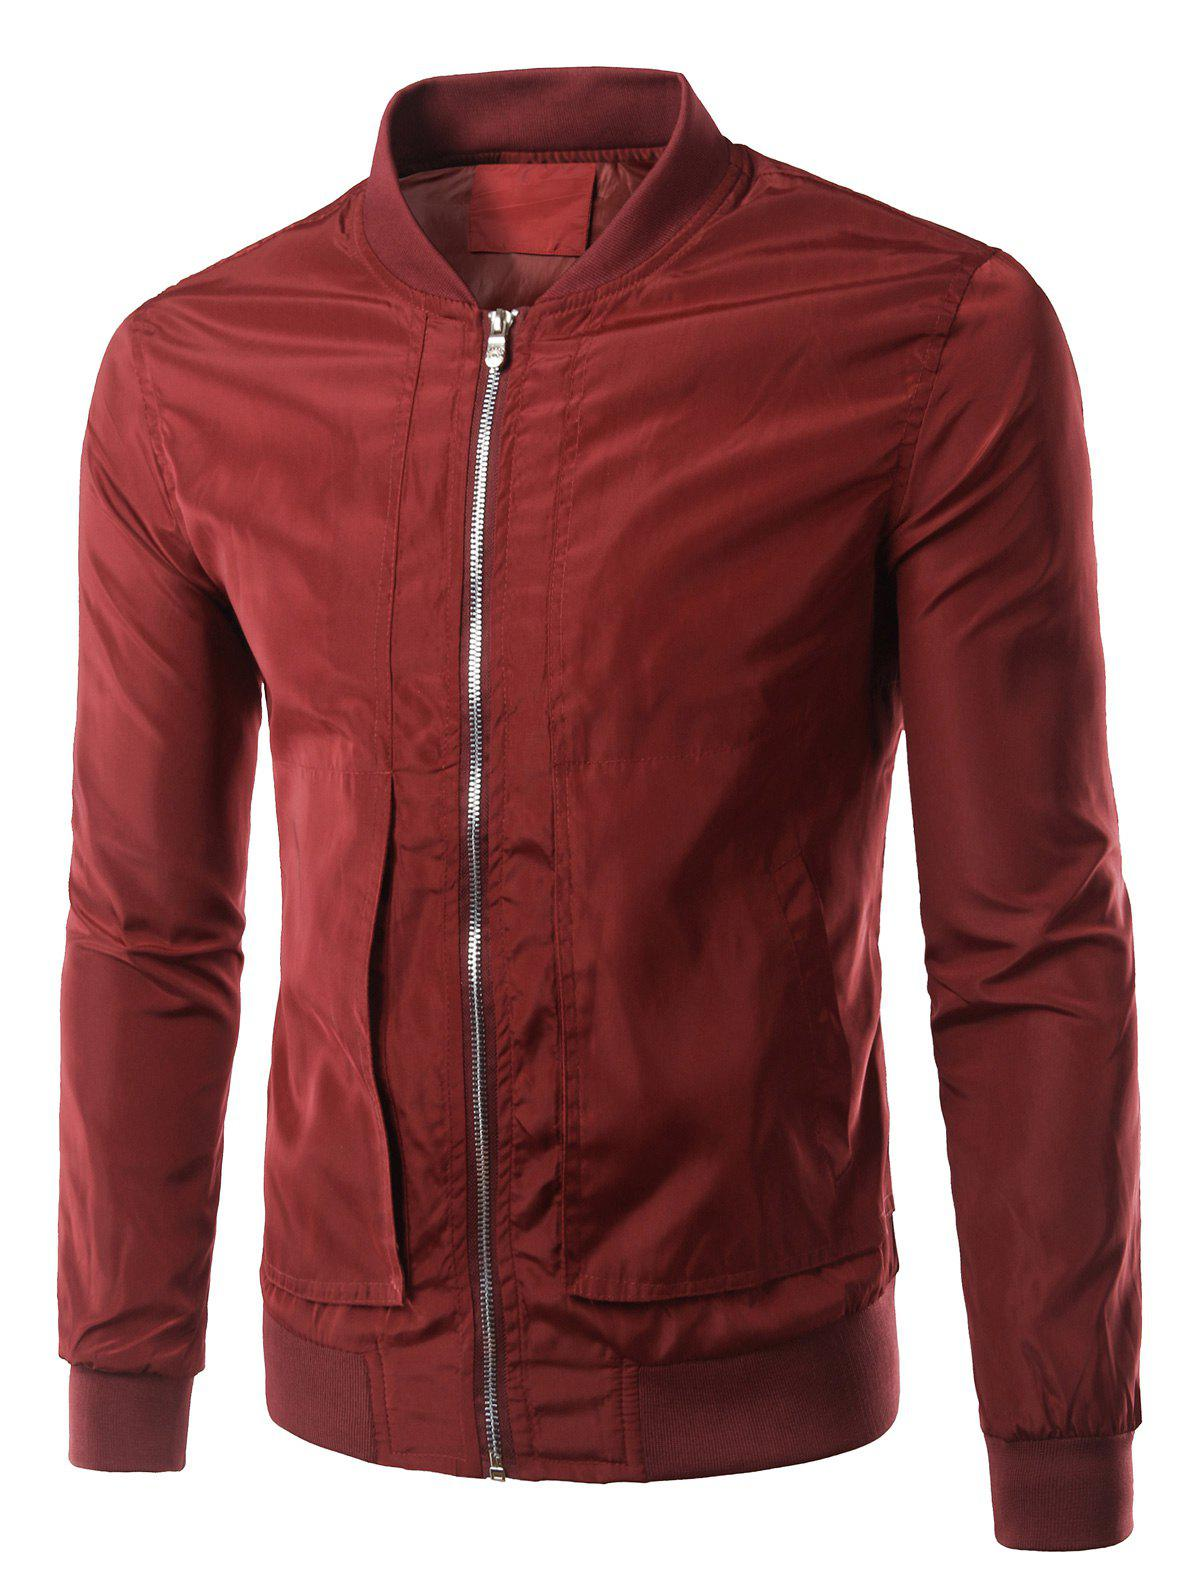 Patch Pocket Design Bomber Jacket - WINE RED 4XL